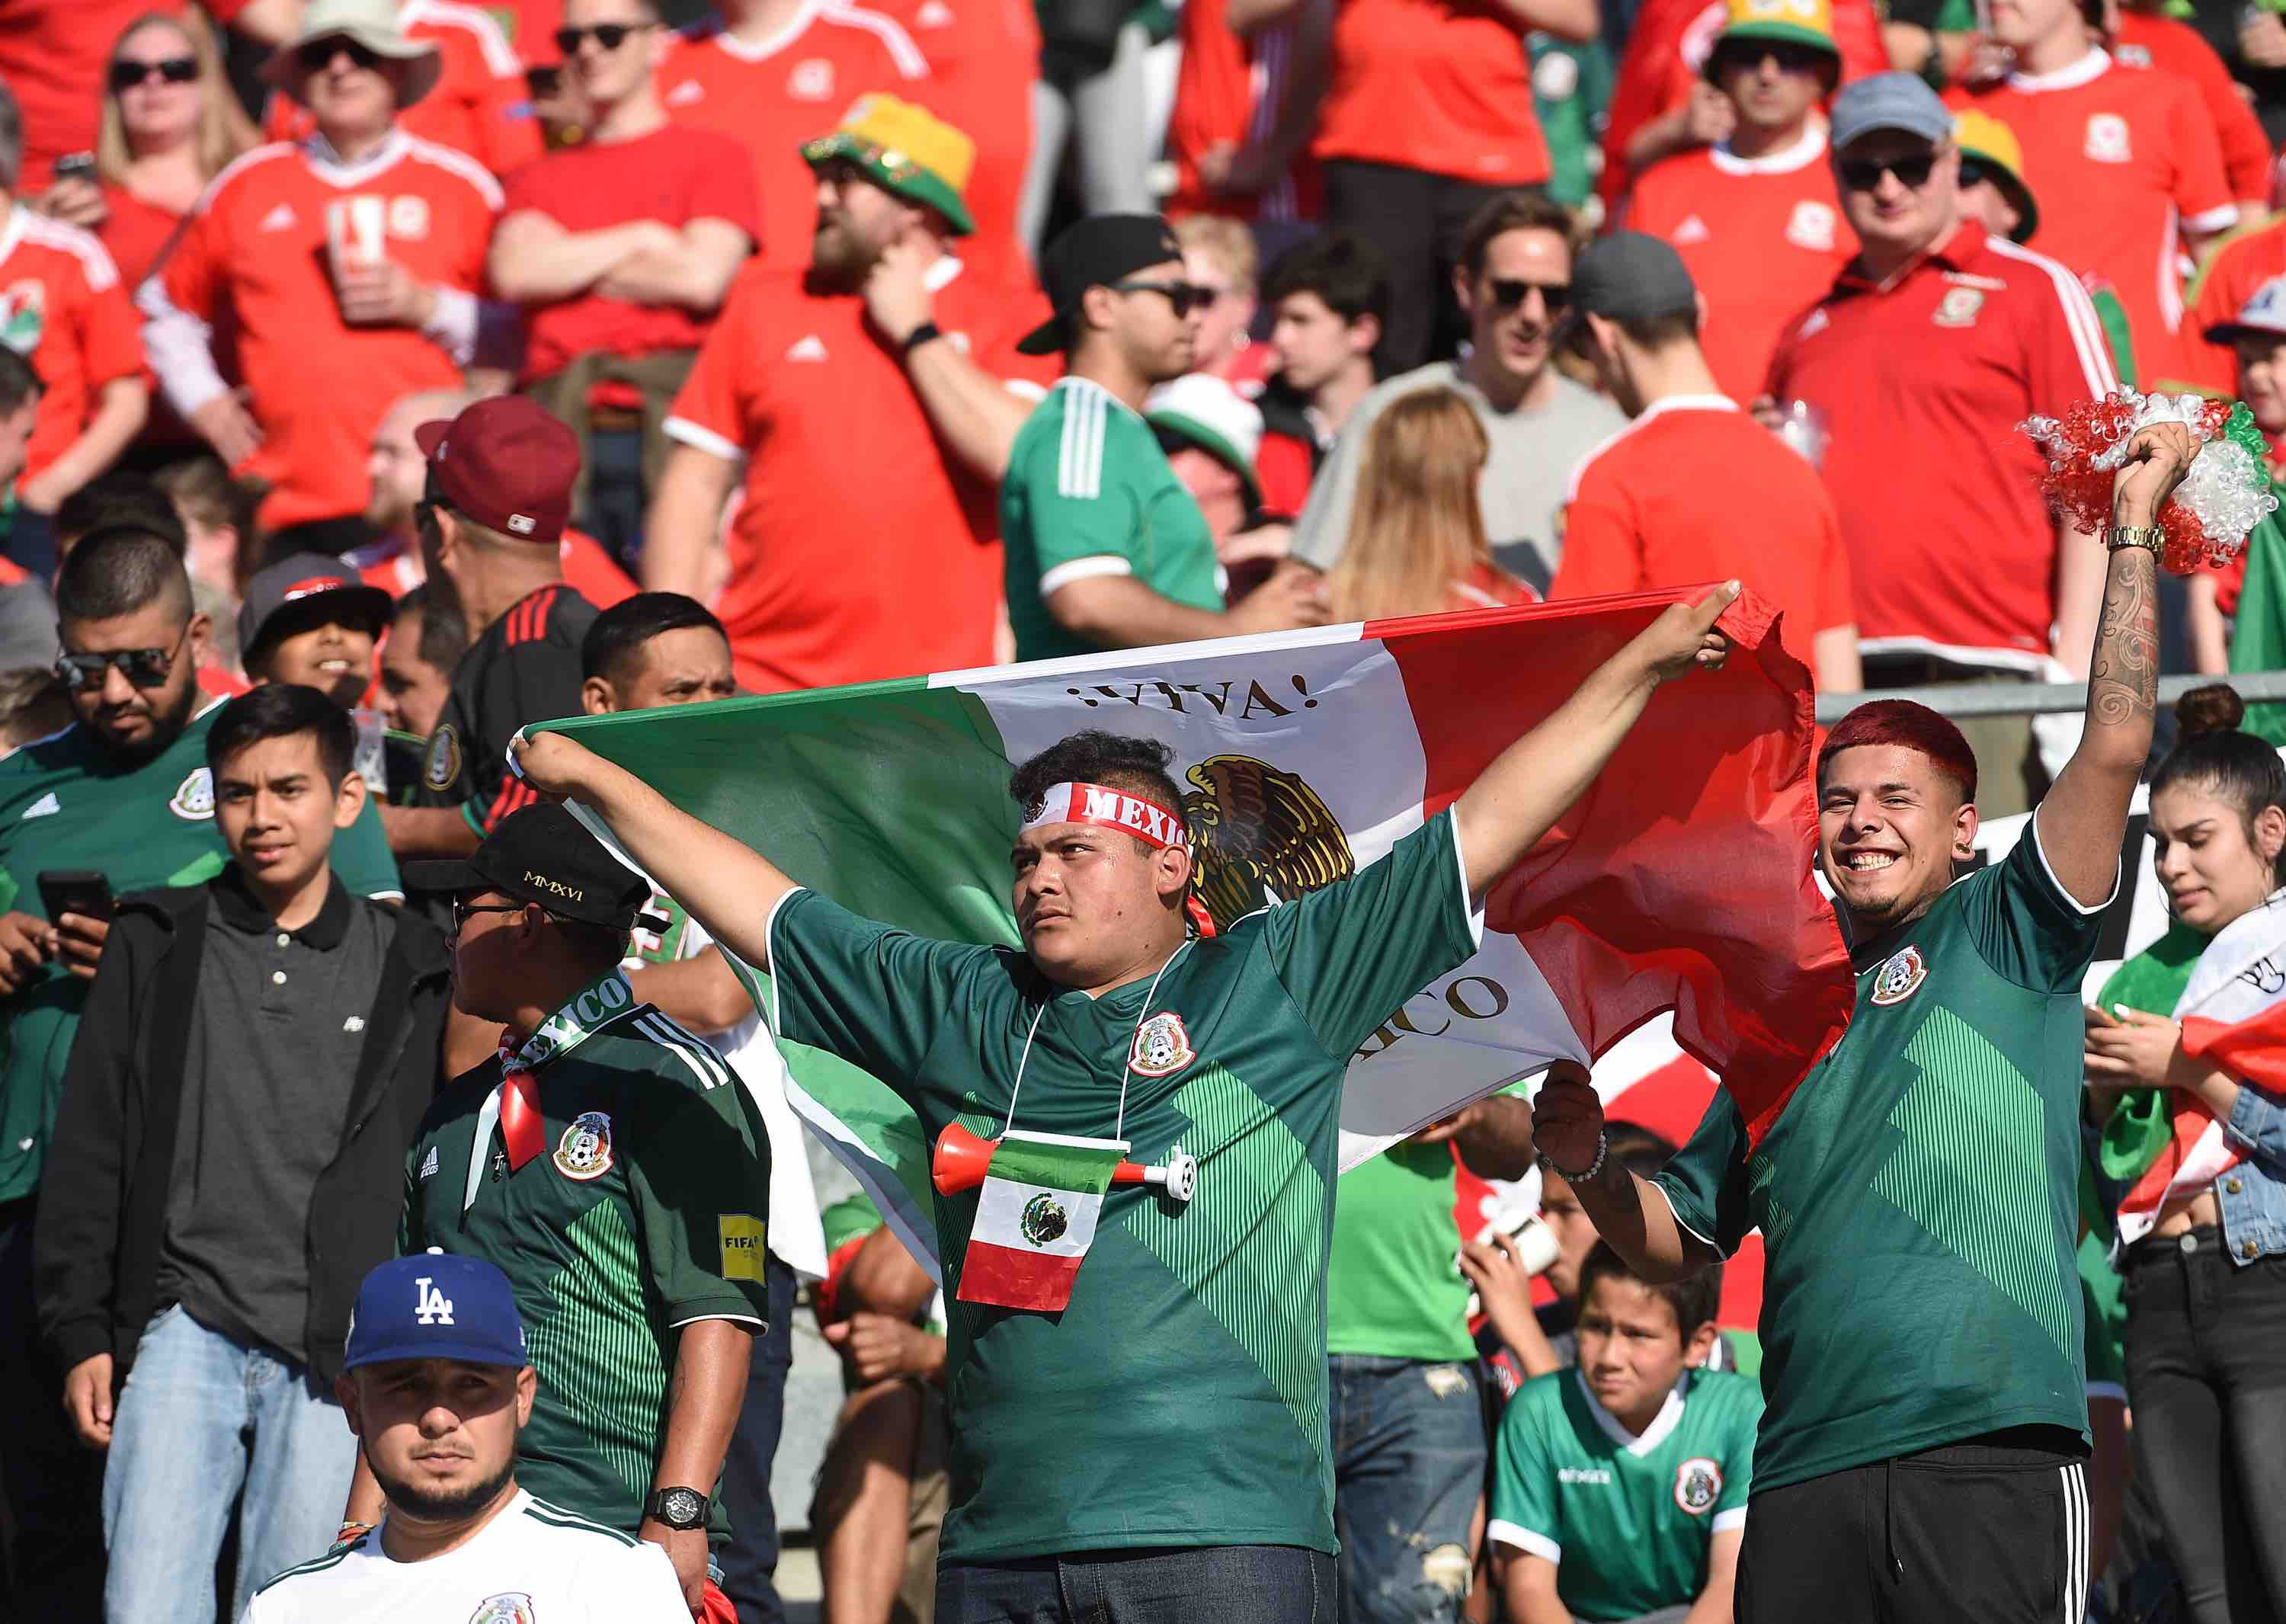 This Mexican Man & Russian Woman Met and Fell In Love During the World Cup